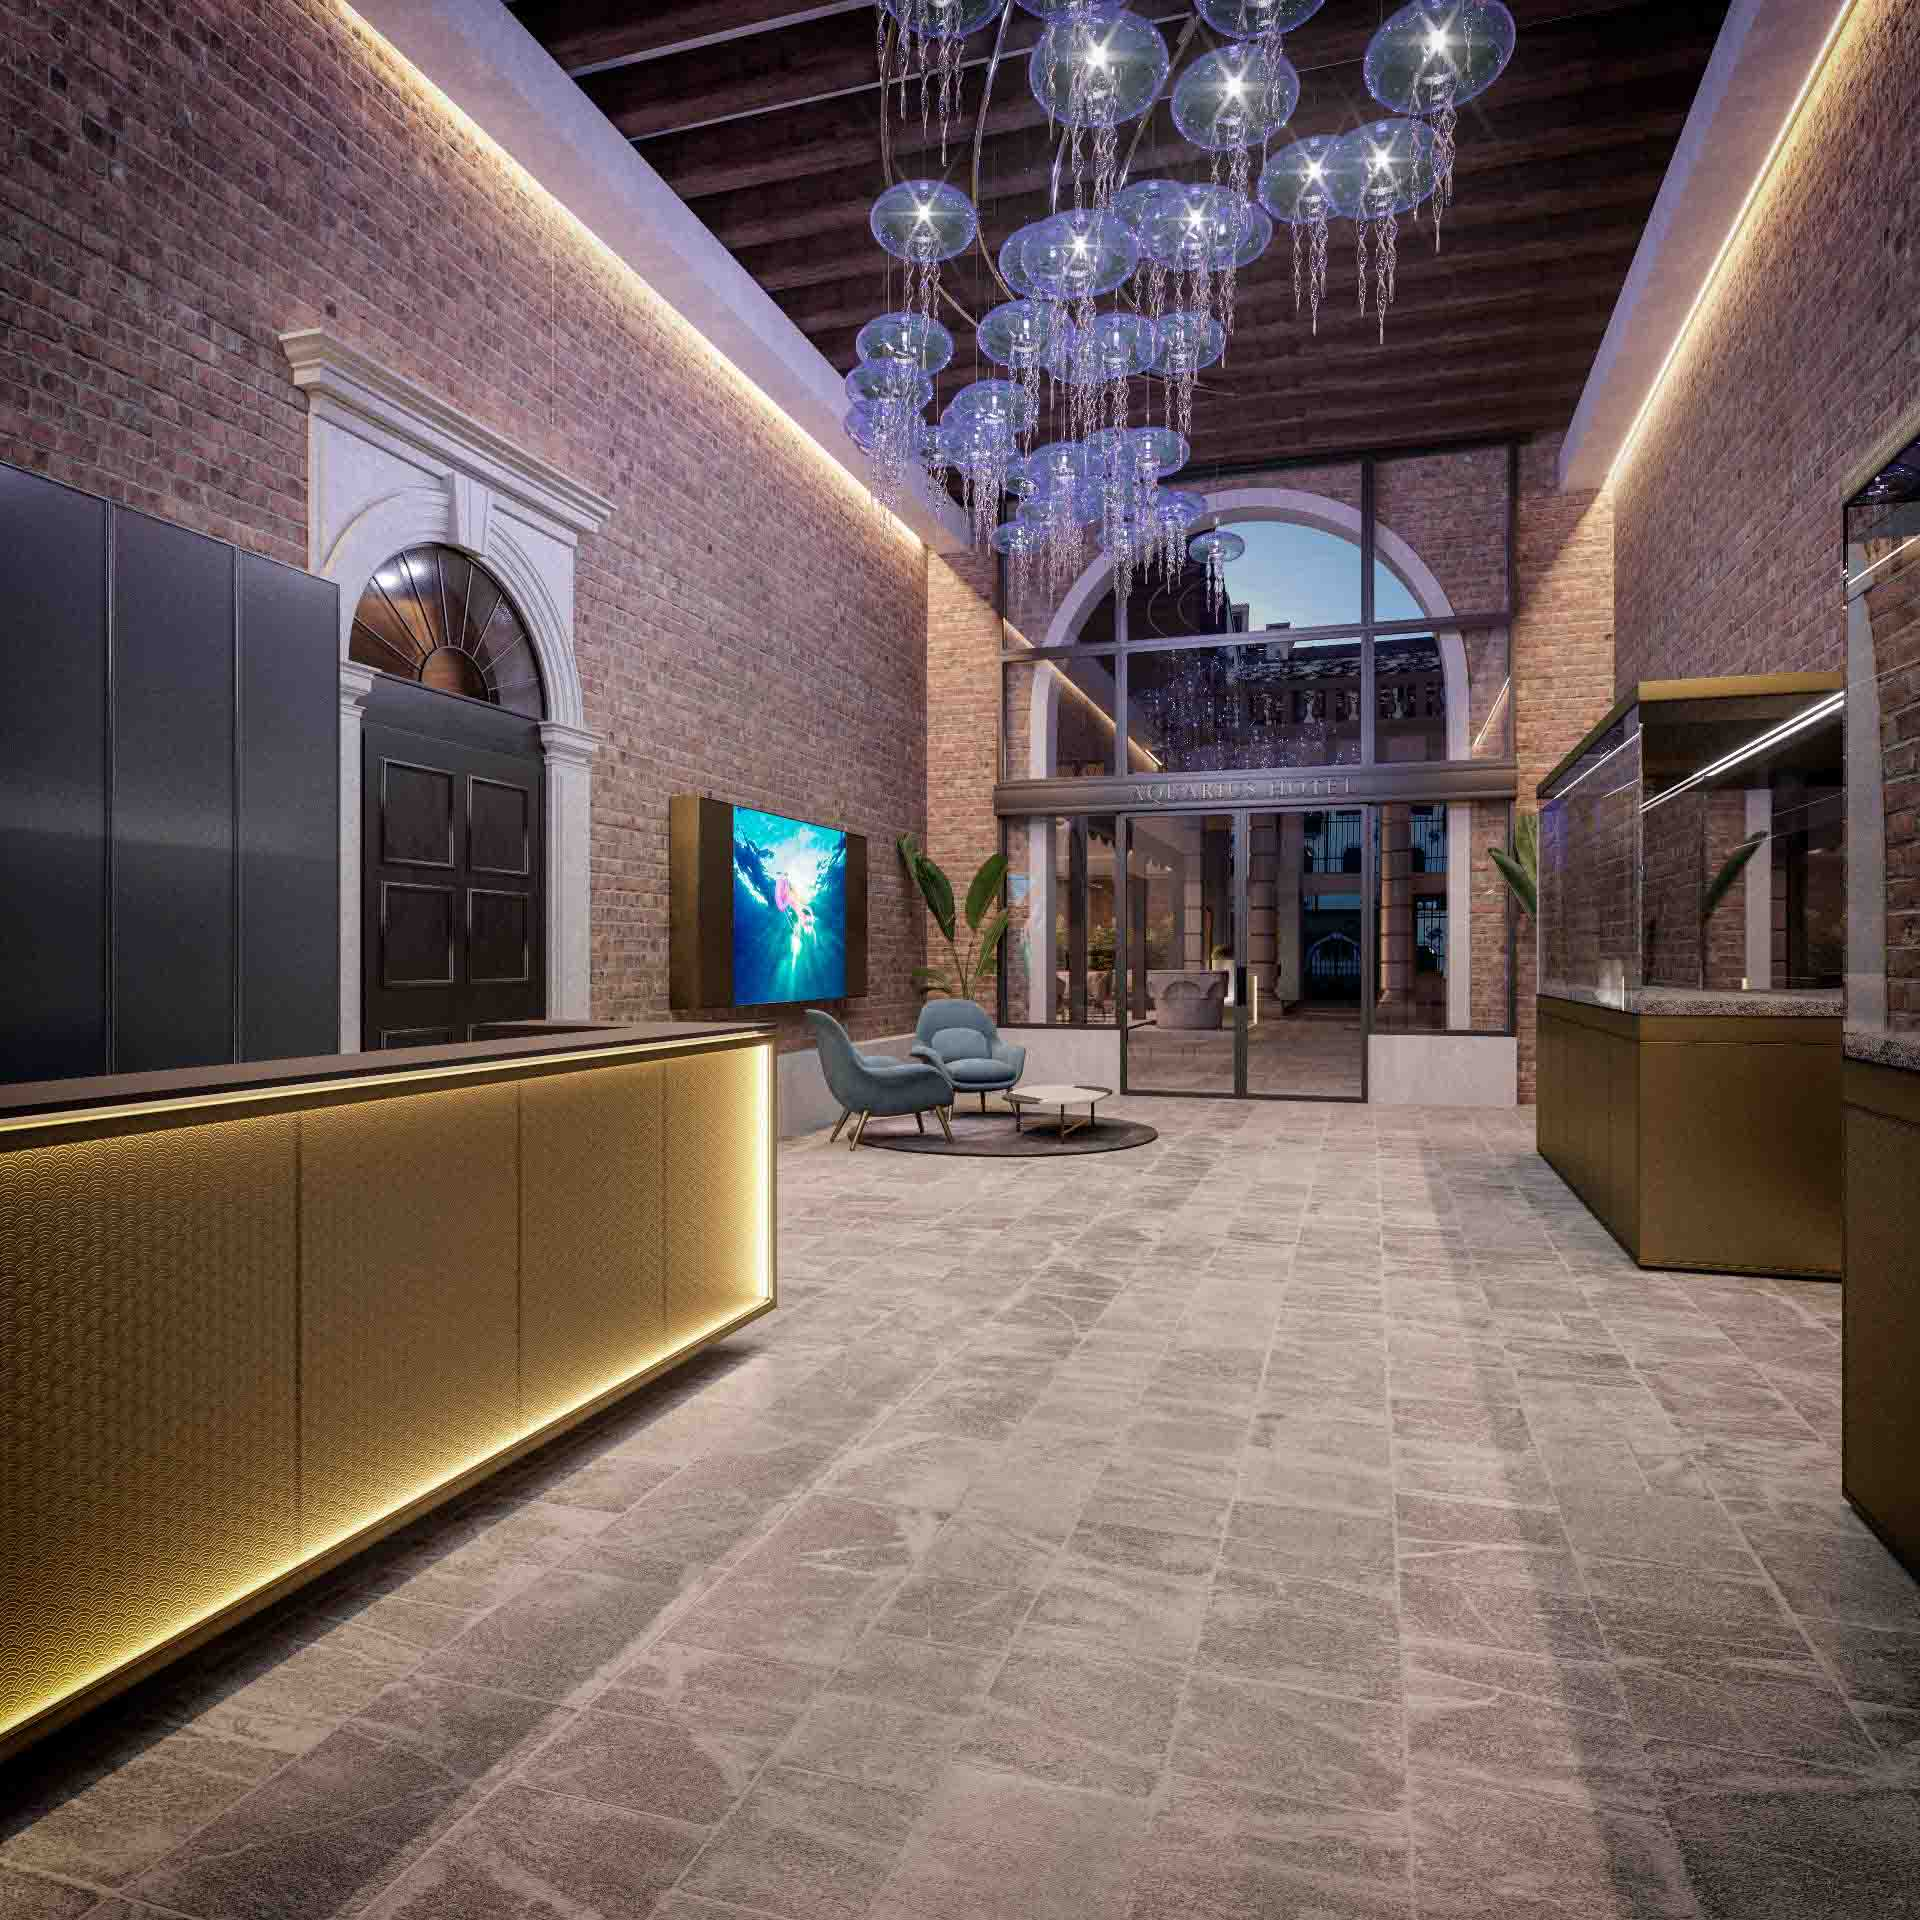 La hall dell'Hotel Aquarius Venice affiliato al brand Ascend Hotel Collection